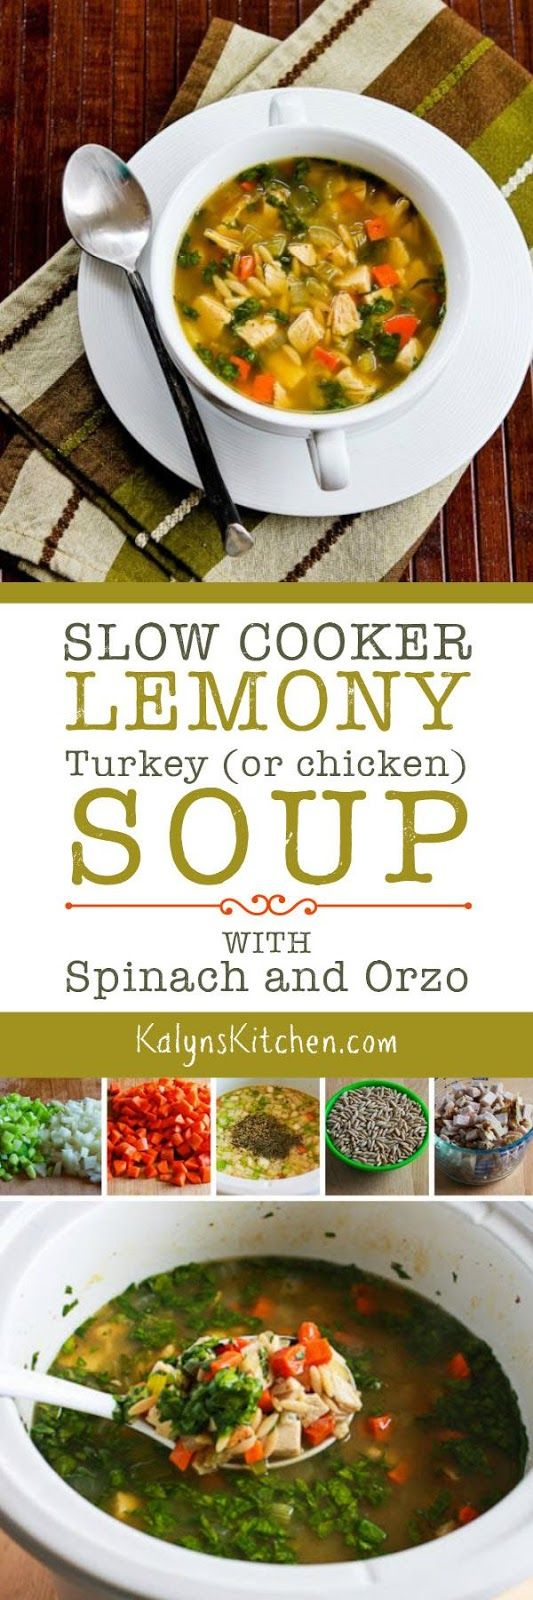 42 best images about School Year Soups on Pinterest ...